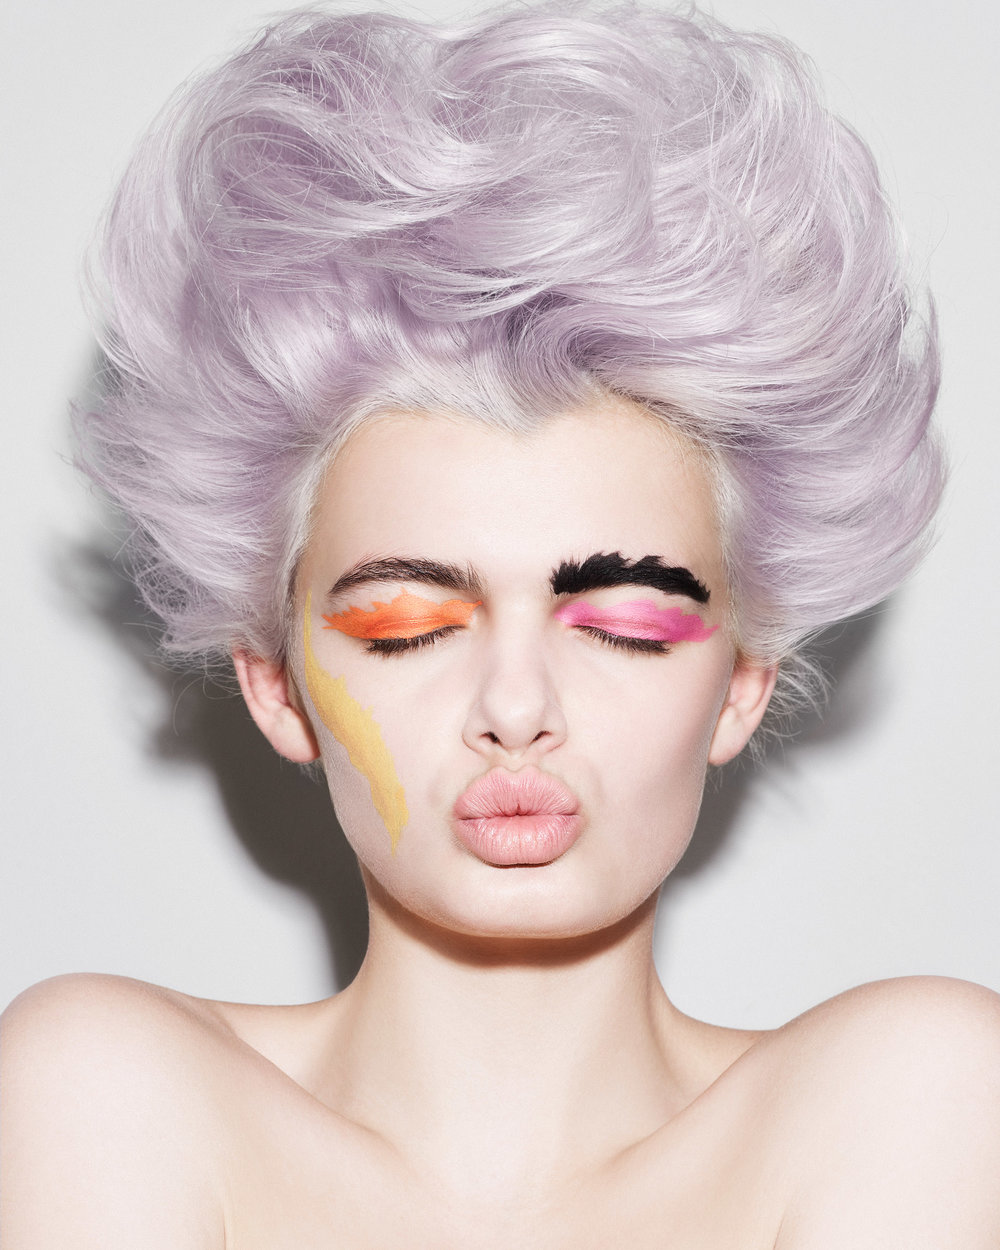 Jack_Eames_Hooker_Young_Colour_Pop_Hair_Beauty_MakeUp_Photography_London_01.jpg